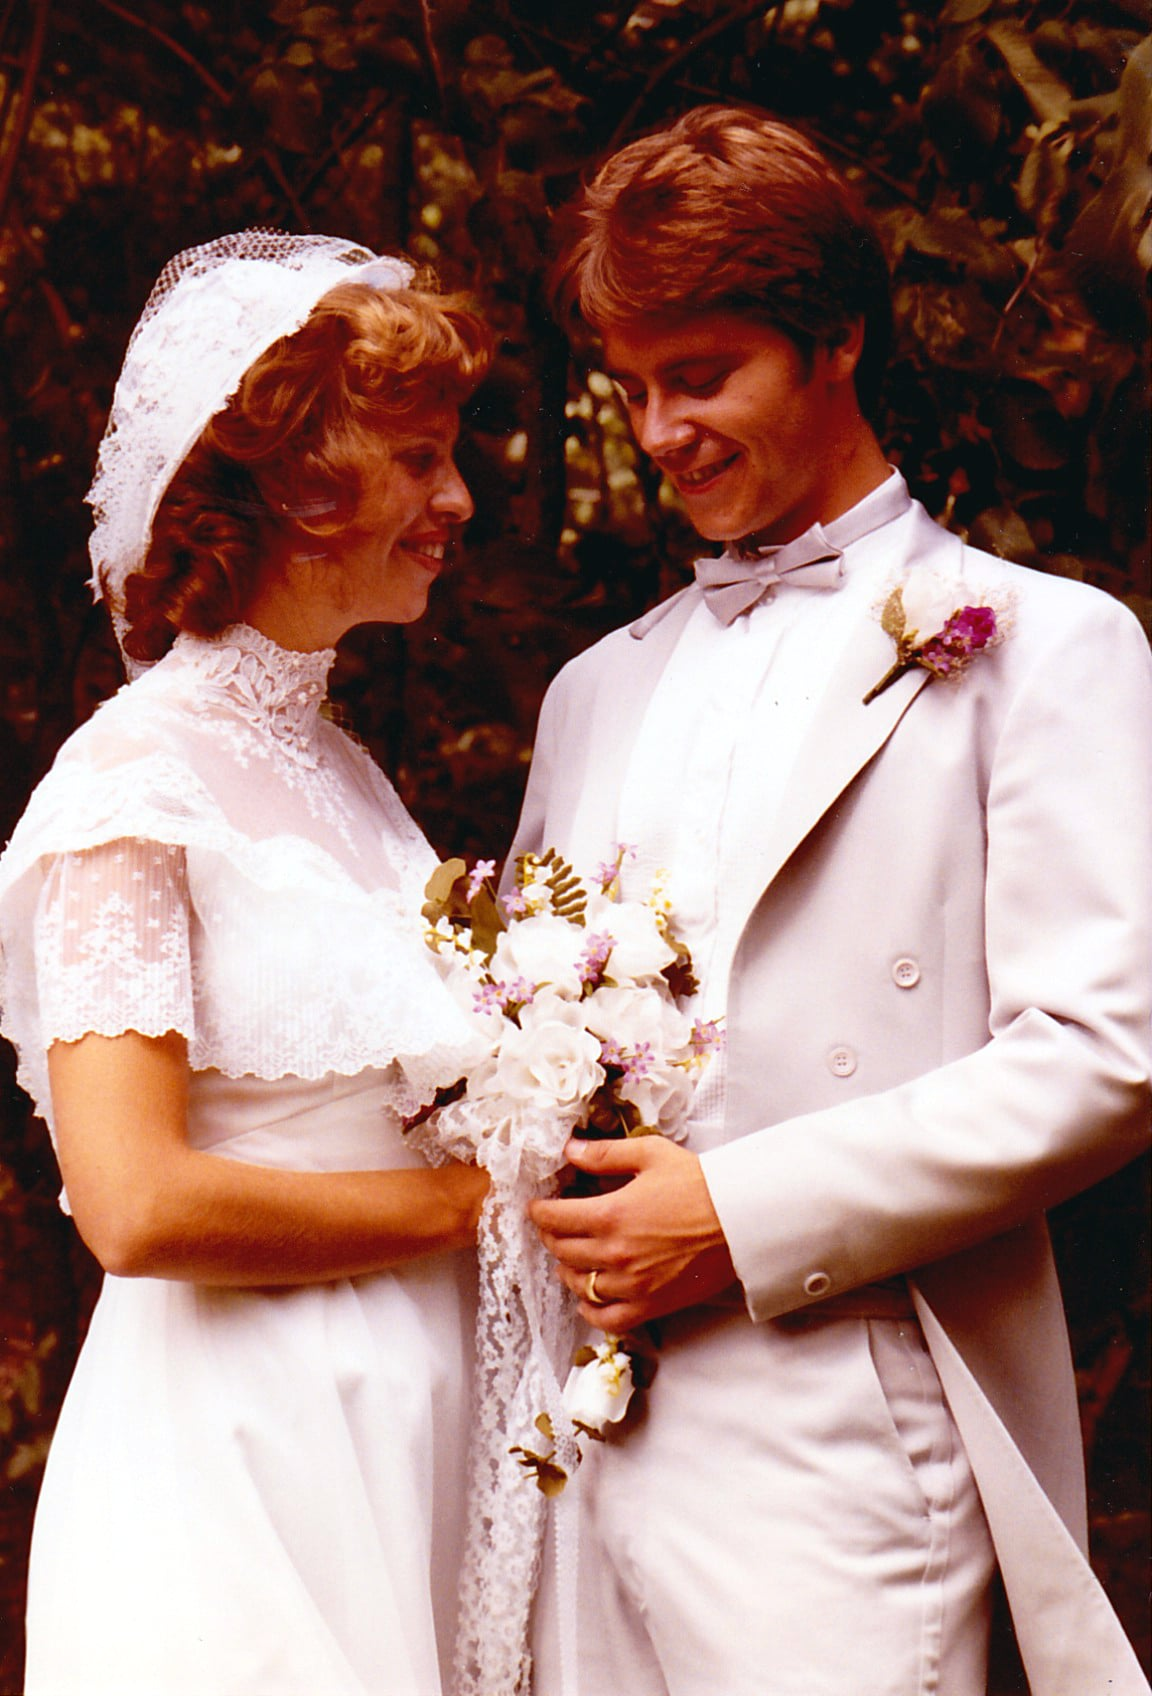 Then: Modest Bridal Gowns